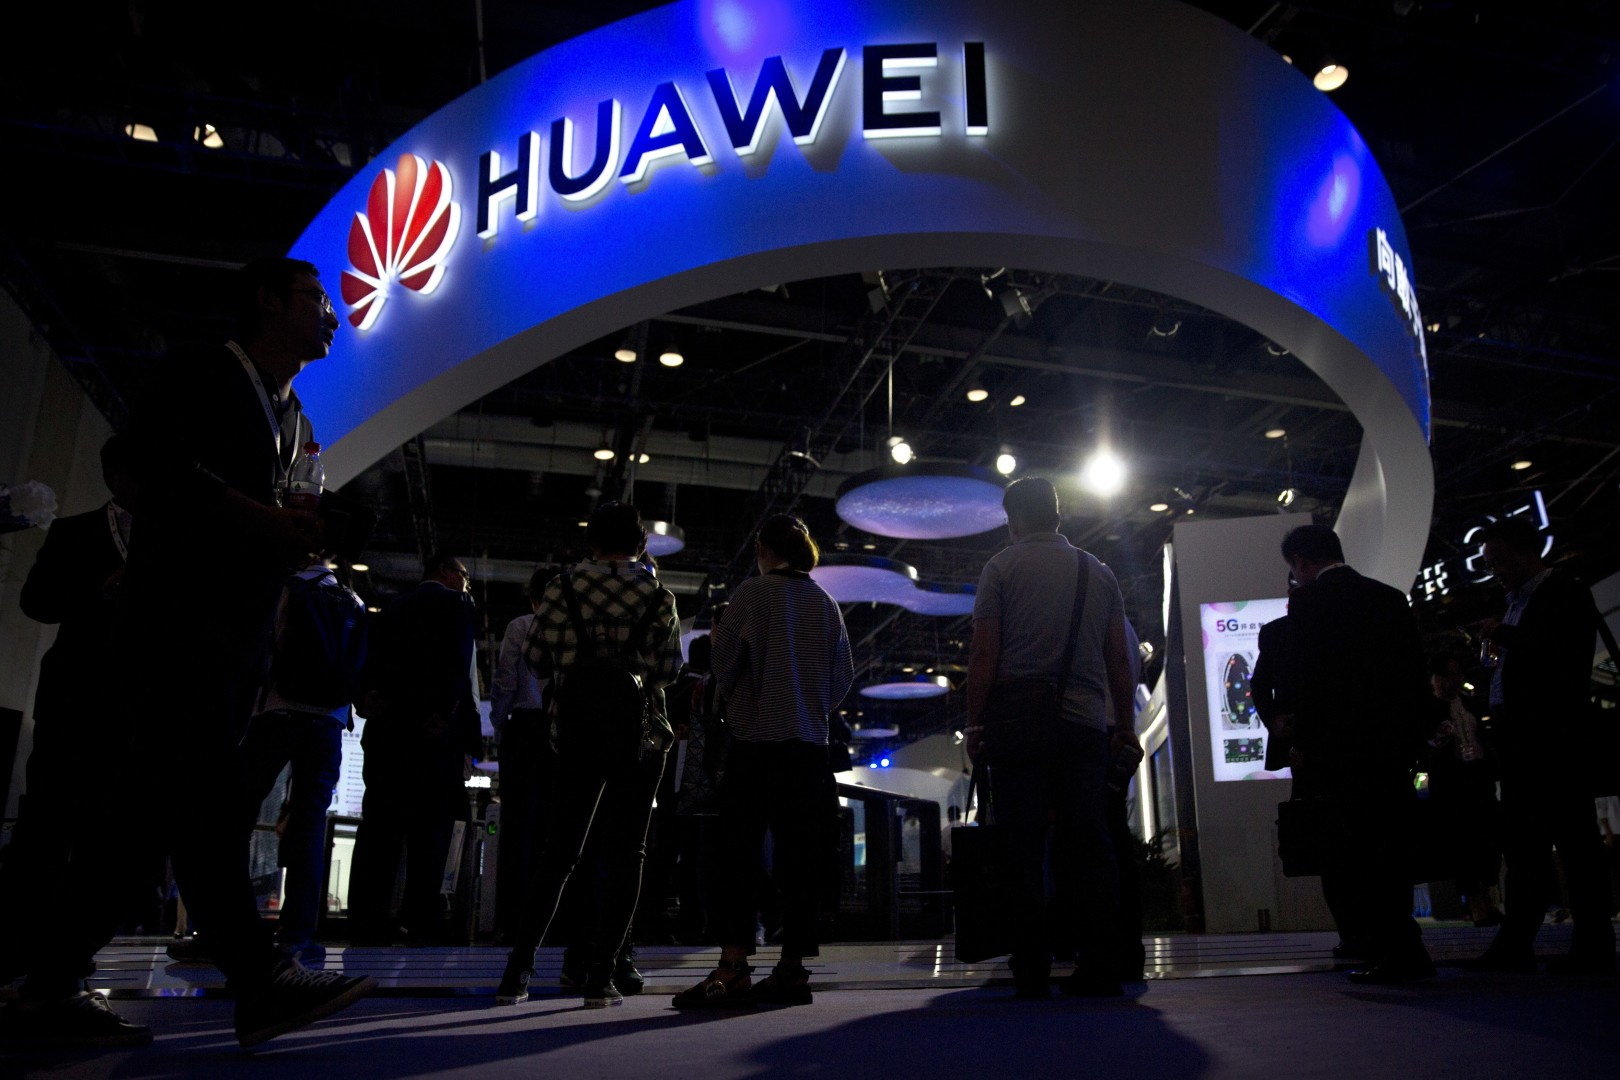 Huawei warns American consumers about warranty issues after decision